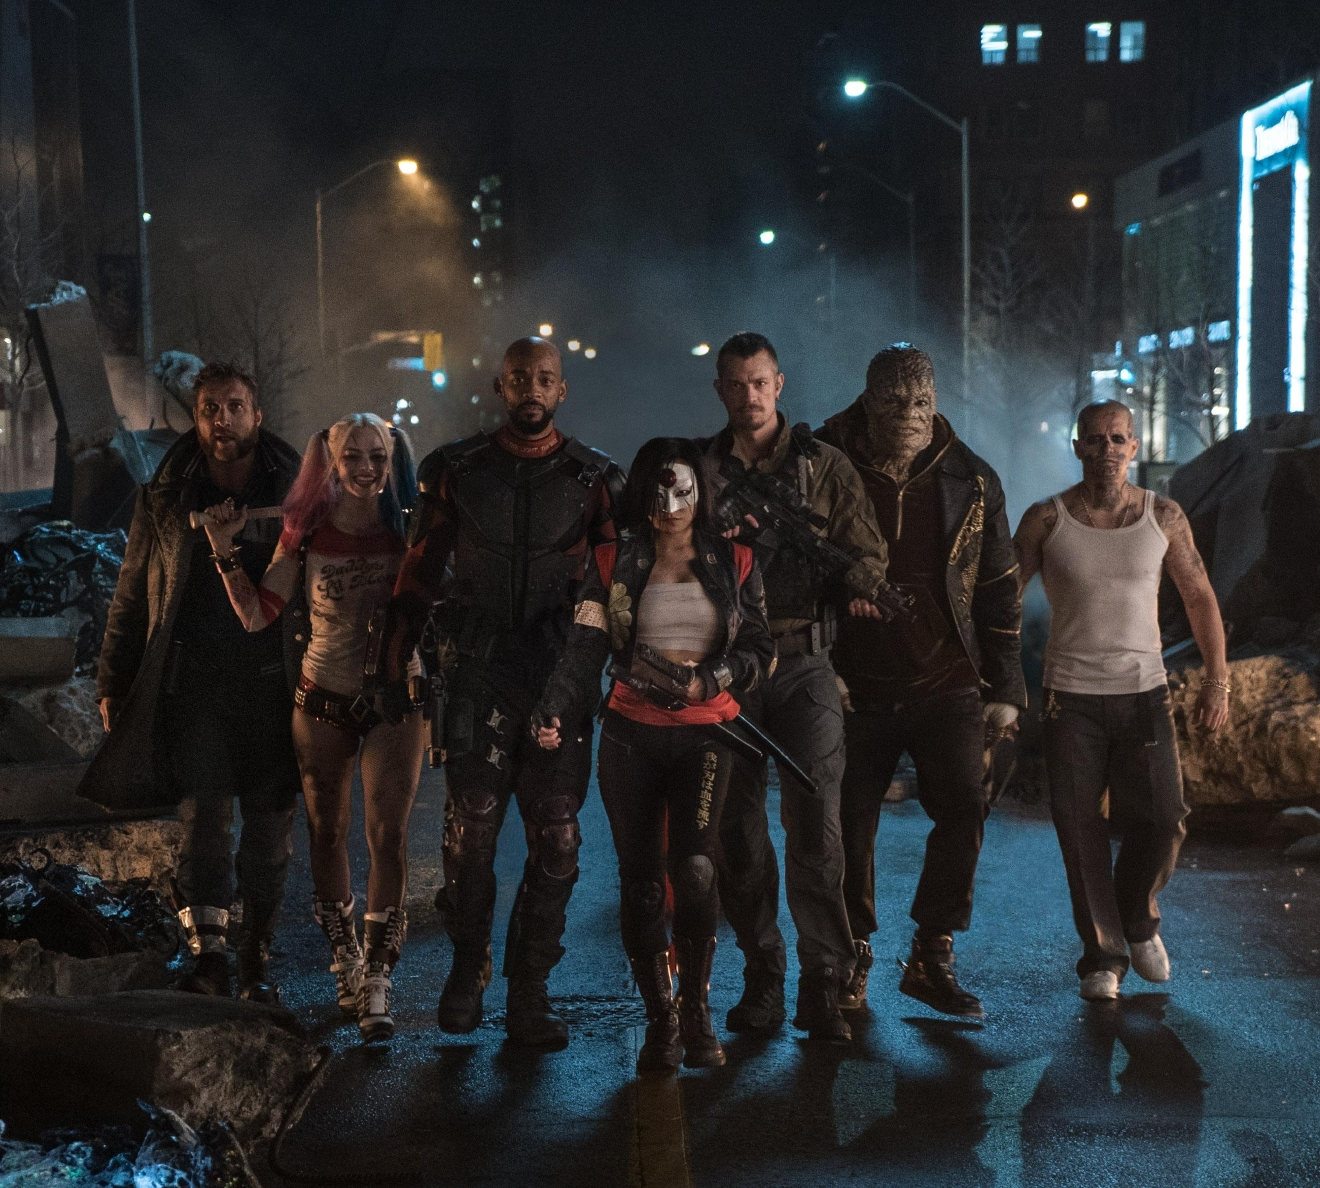 "(L-r) JAI COURTNEY as Boomerang, MARGOT ROBBIE as Harley Quinn, WILL SMITH as Deadshot, KAREN FUKUHARA as Katana, JOEL KINNAMAN as Rick Flag, ADEWALE AKINNUOYE-AGBAJE as Killer Croc and JAY HERNANDEZ as Diablo in Warner Bros. Pictures' action adventure ""SUICIDE SQUAD,"" a Warner Bros. Pictures release."